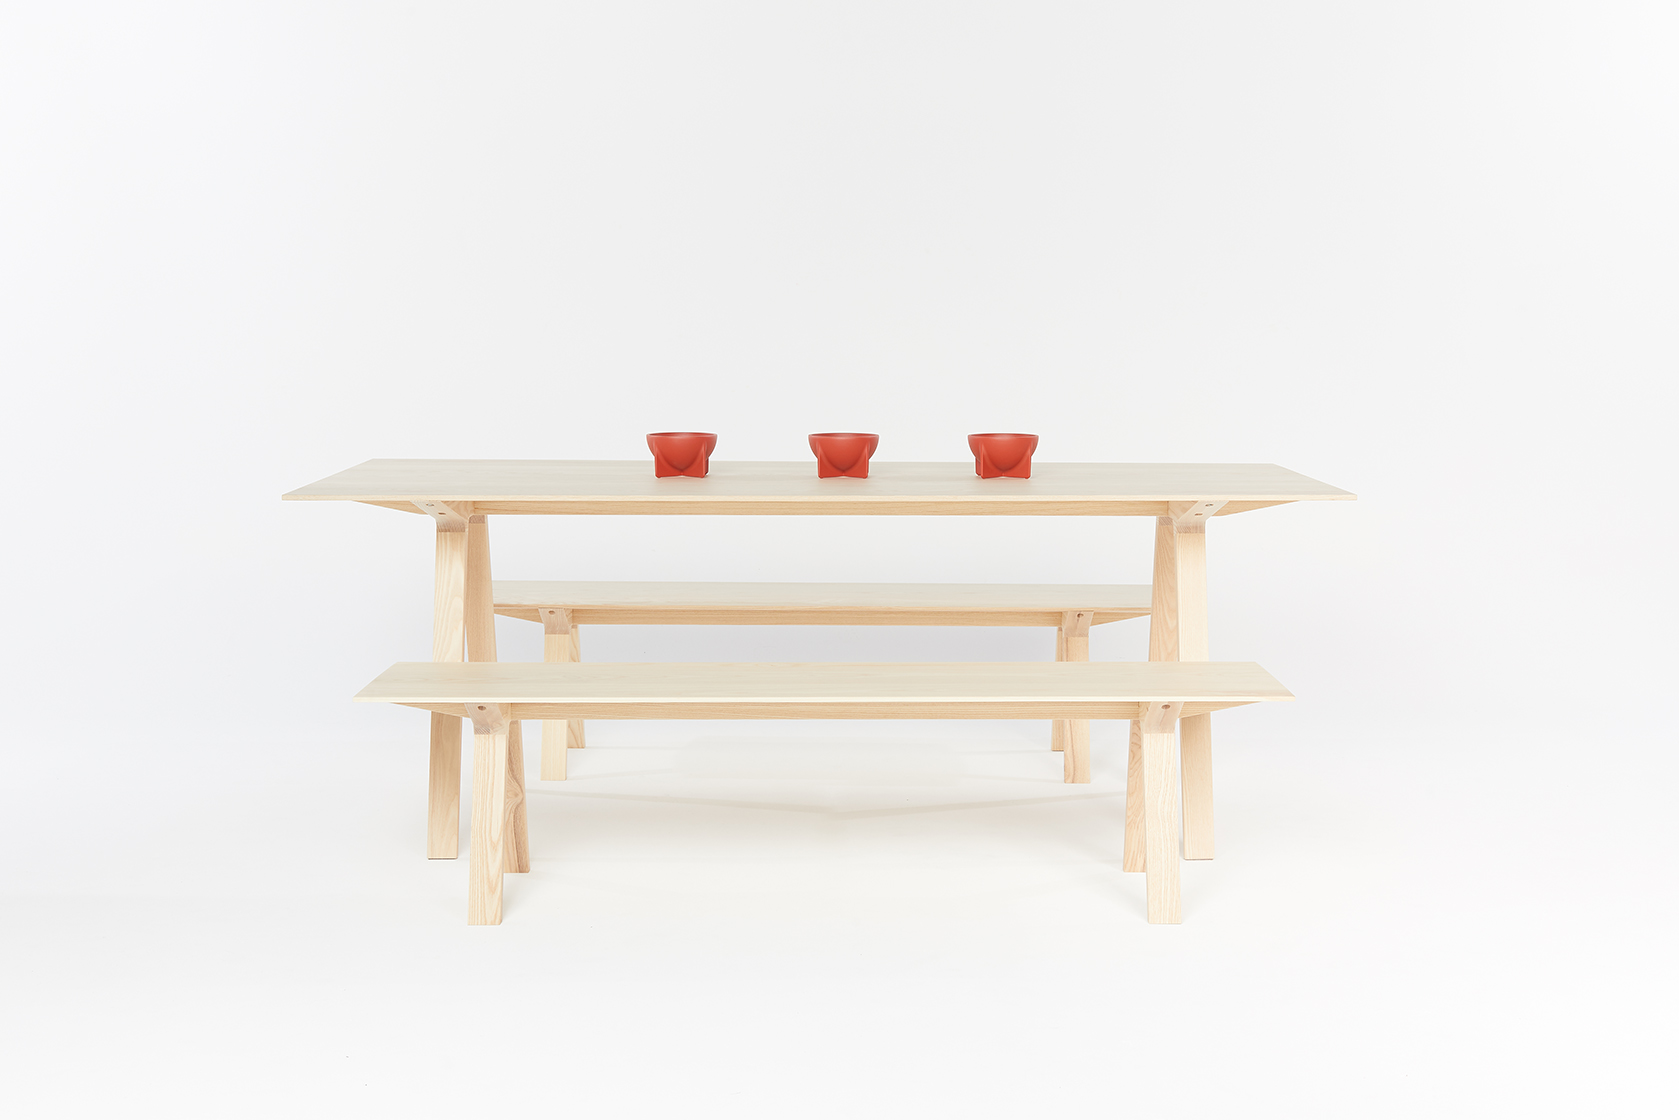 Louis bench by Mast Furniture and designed by Tom Fereday. Modern, handmade furniture.